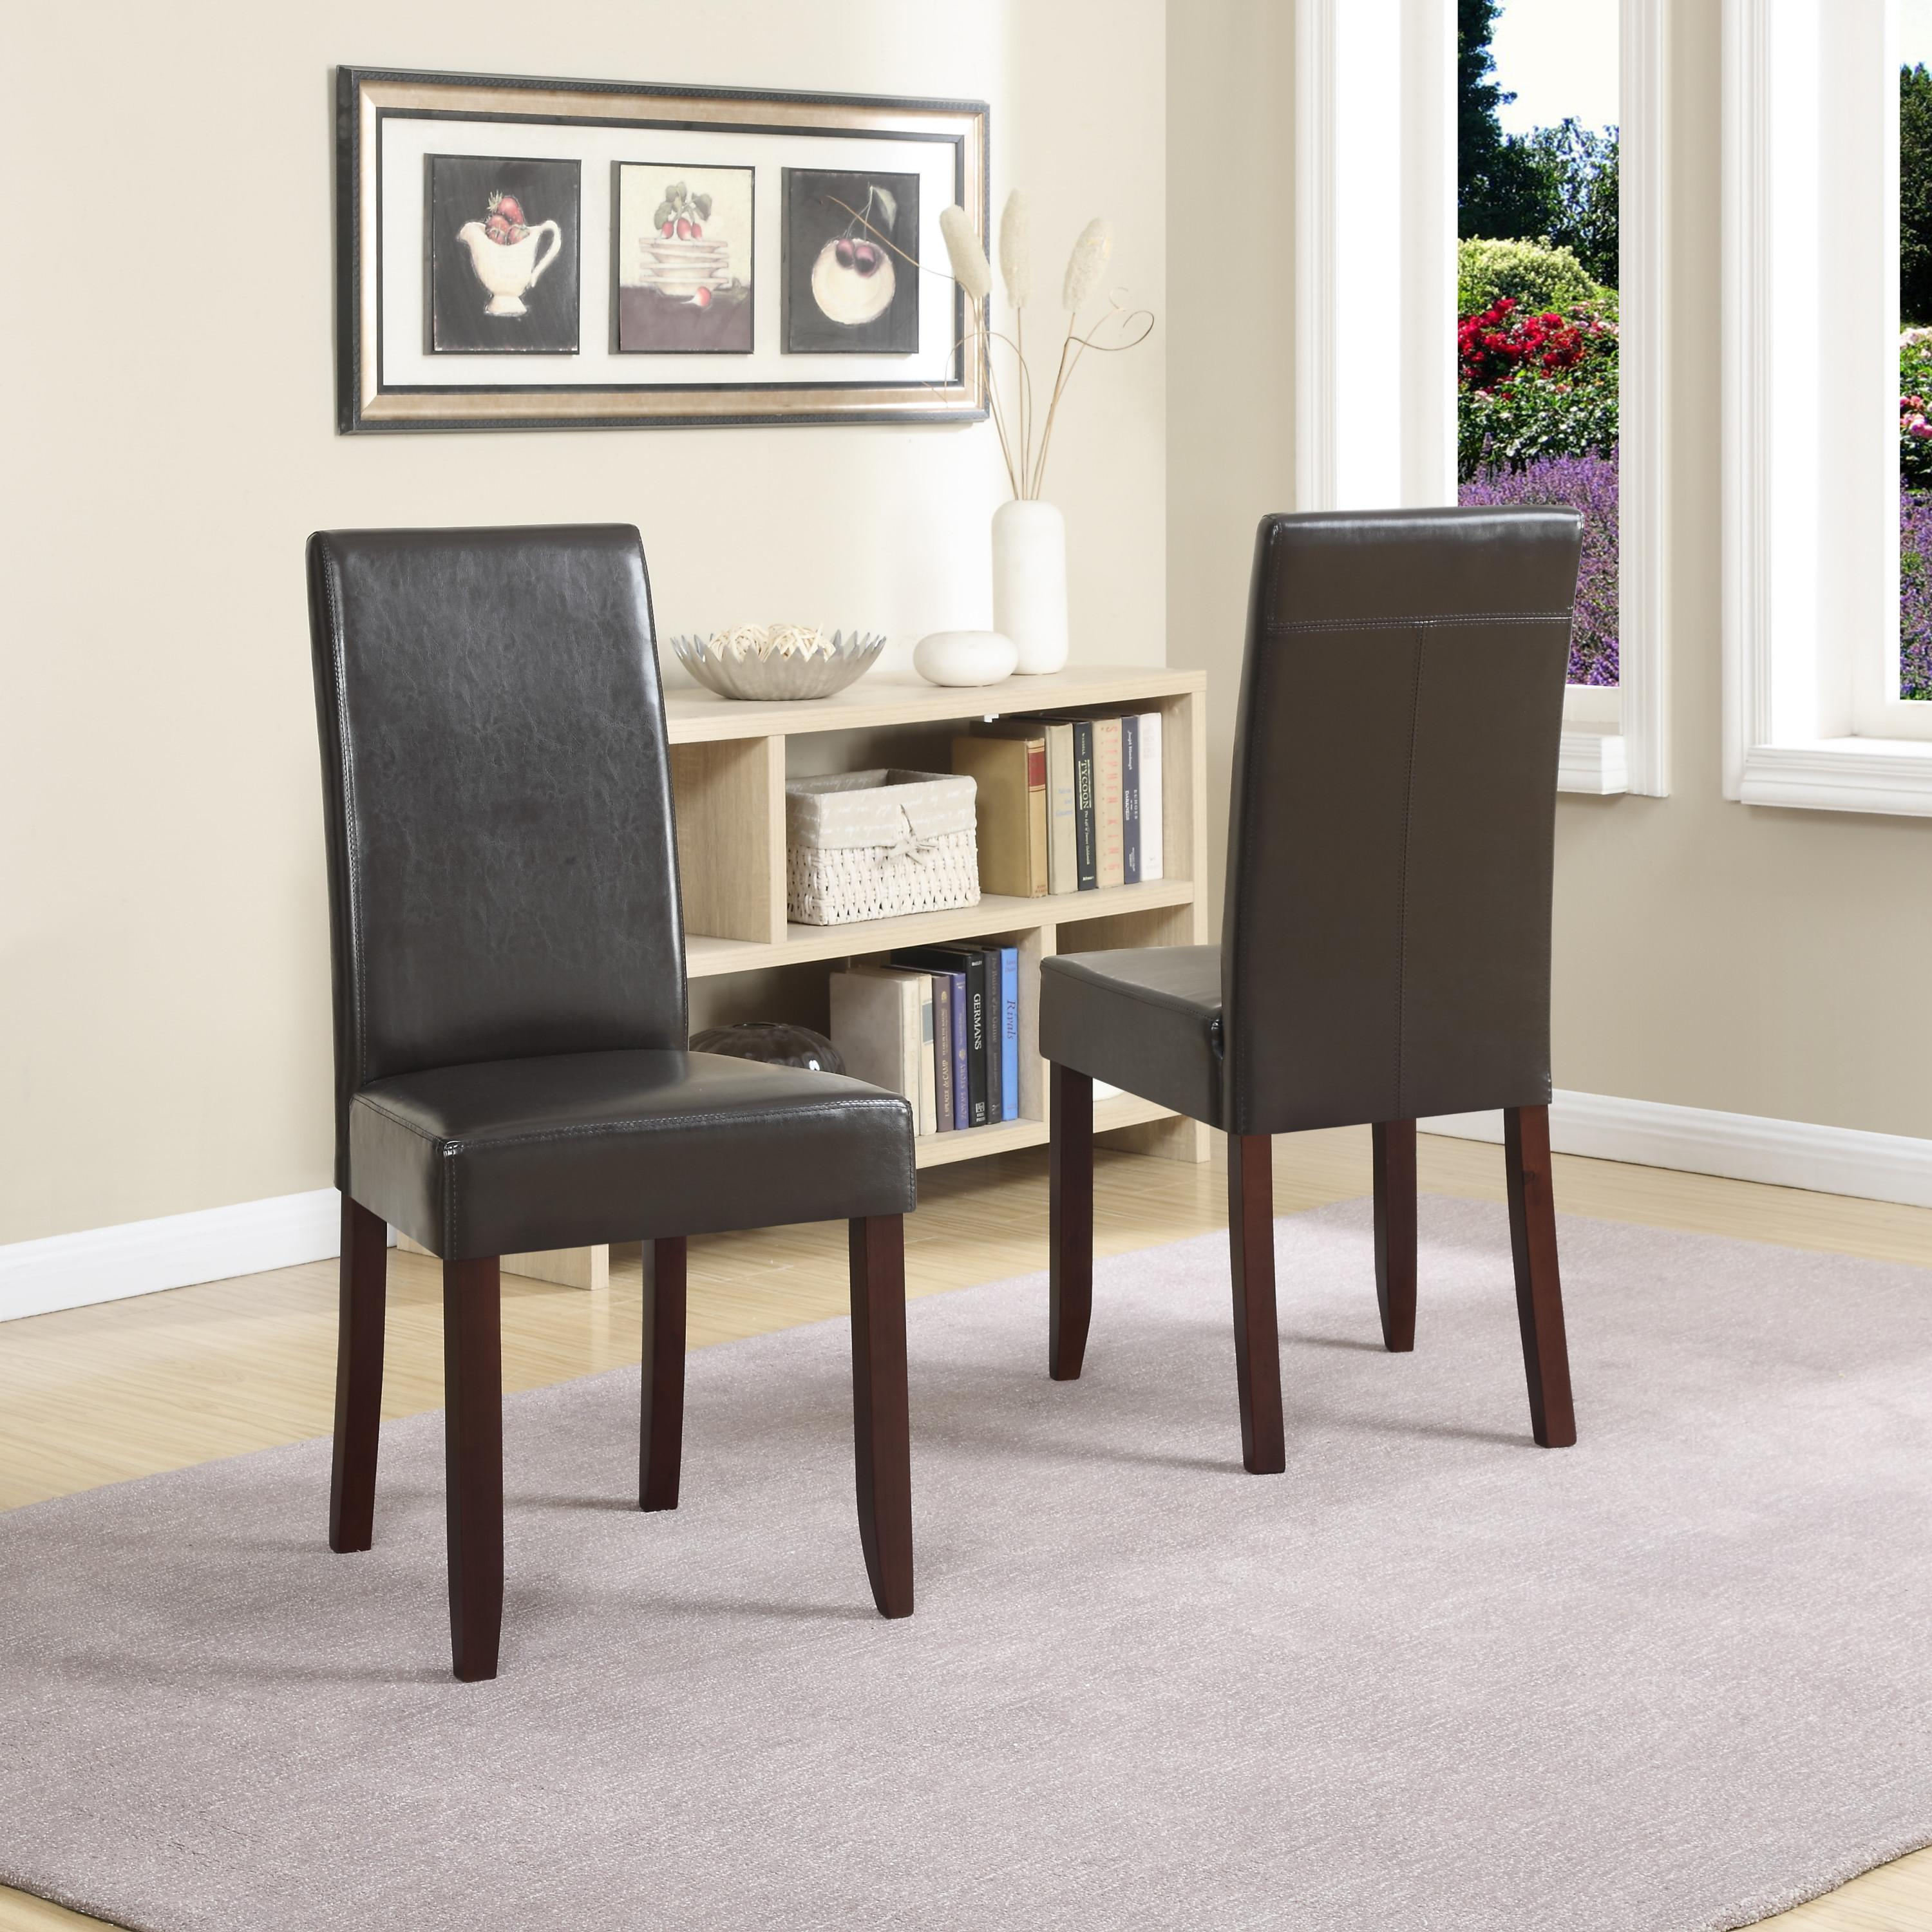 Parson chair leather - View Larger